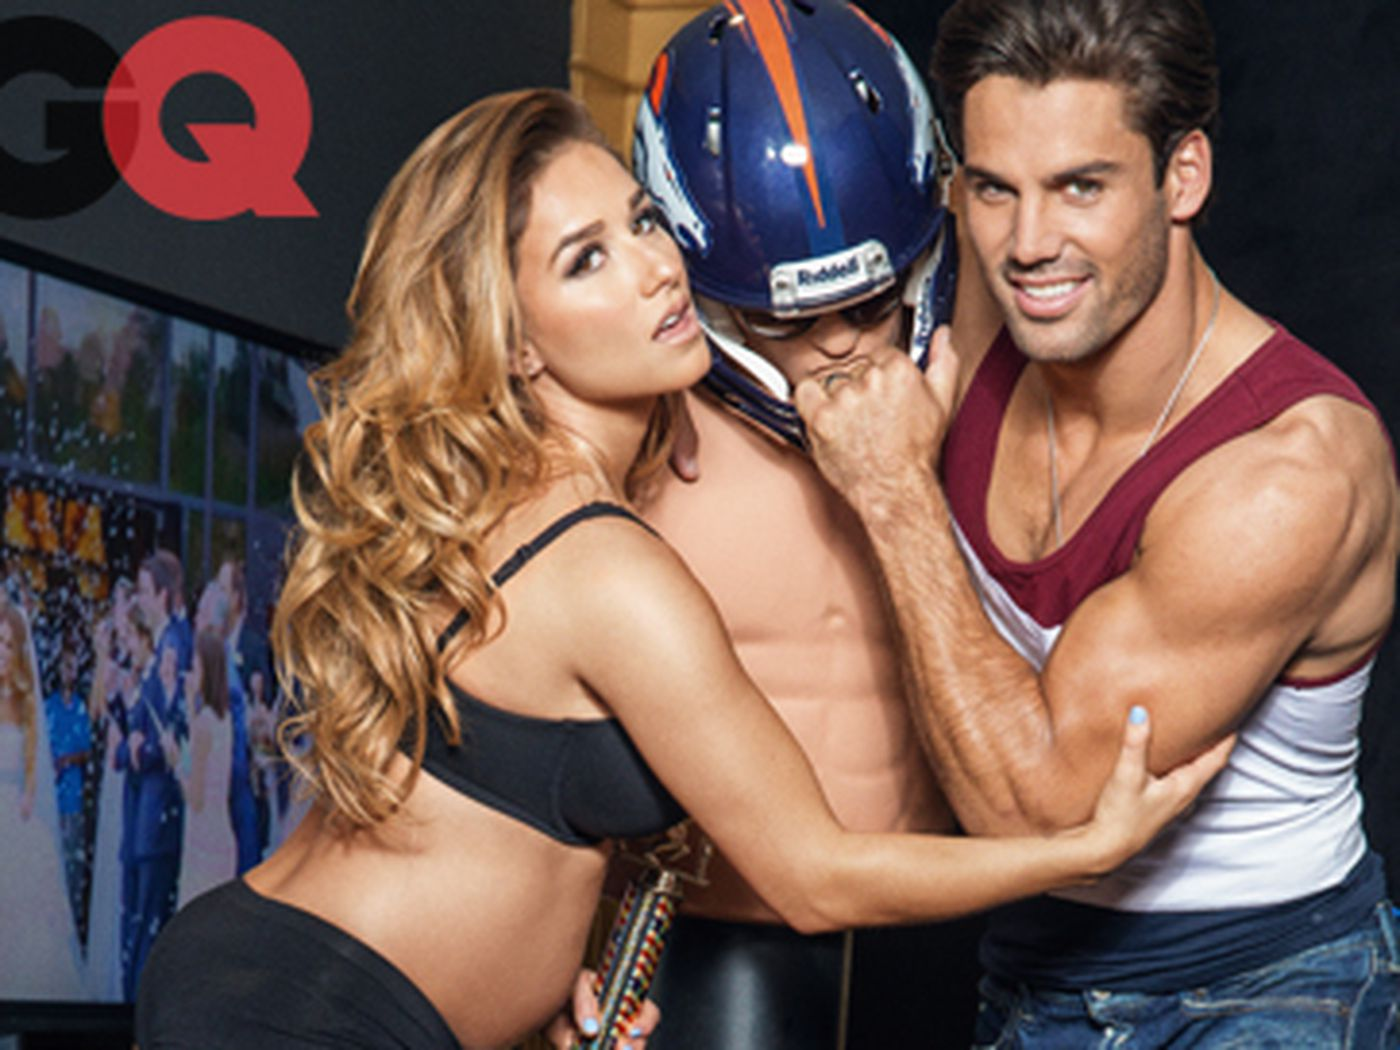 Eric Decker Gets Shirtless In GQ Photo Spread With Wife Jessie James